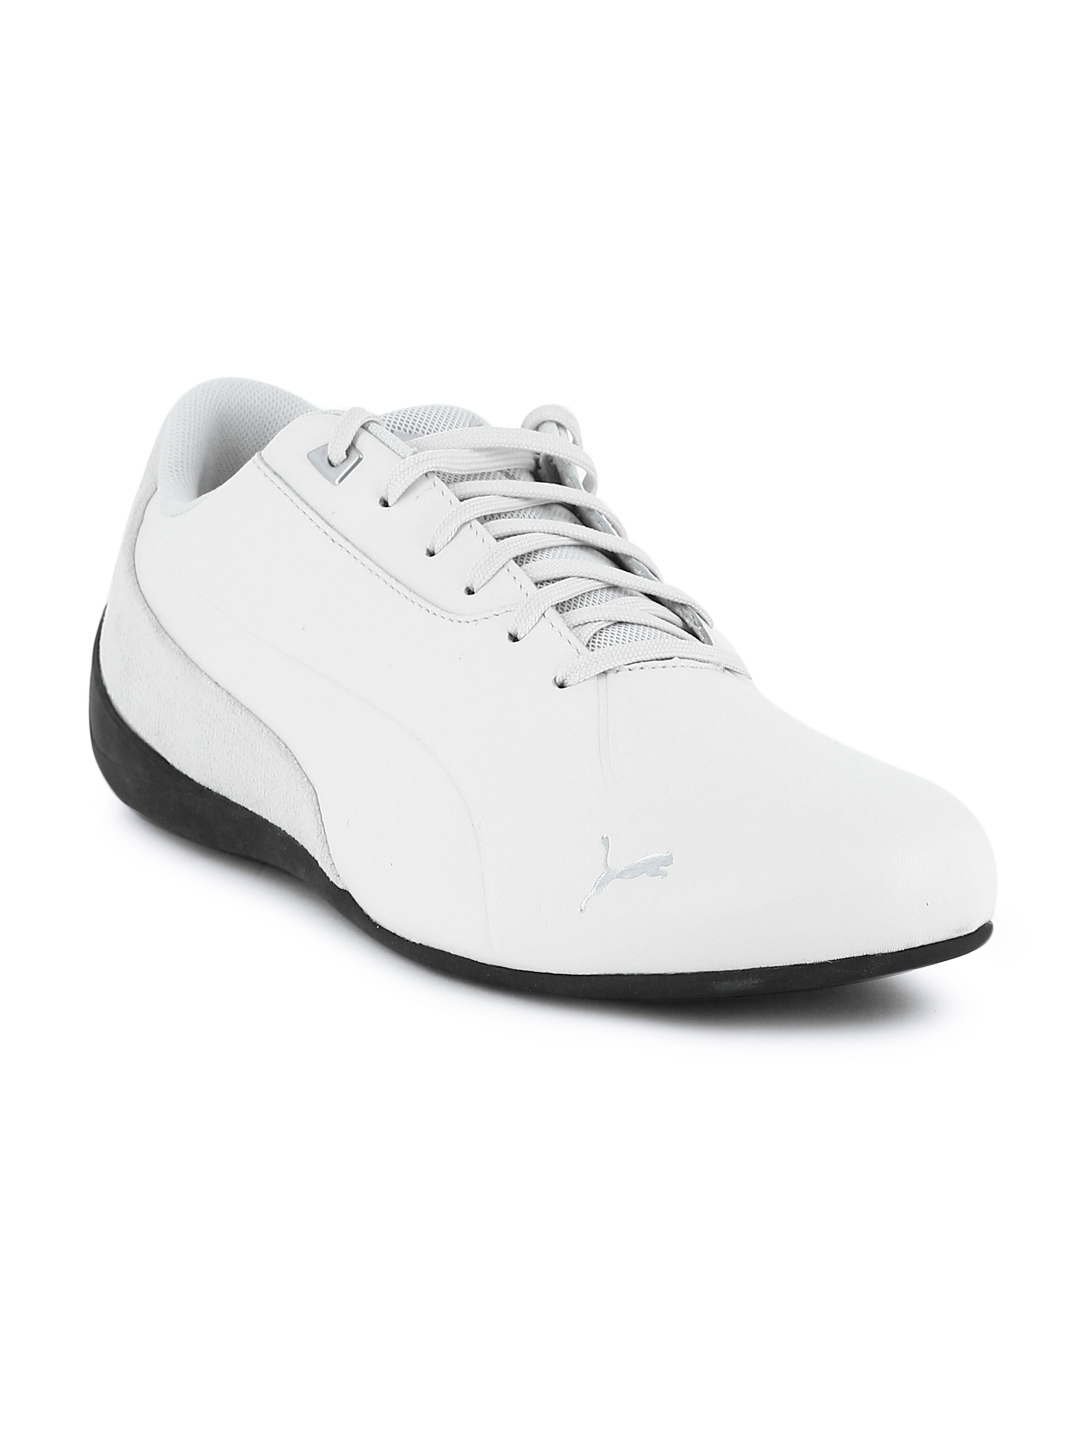 7ea195321aa Buy Puma Unisex Off White Drift Cat 7 CLN Sneakers - Casual Shoes ...